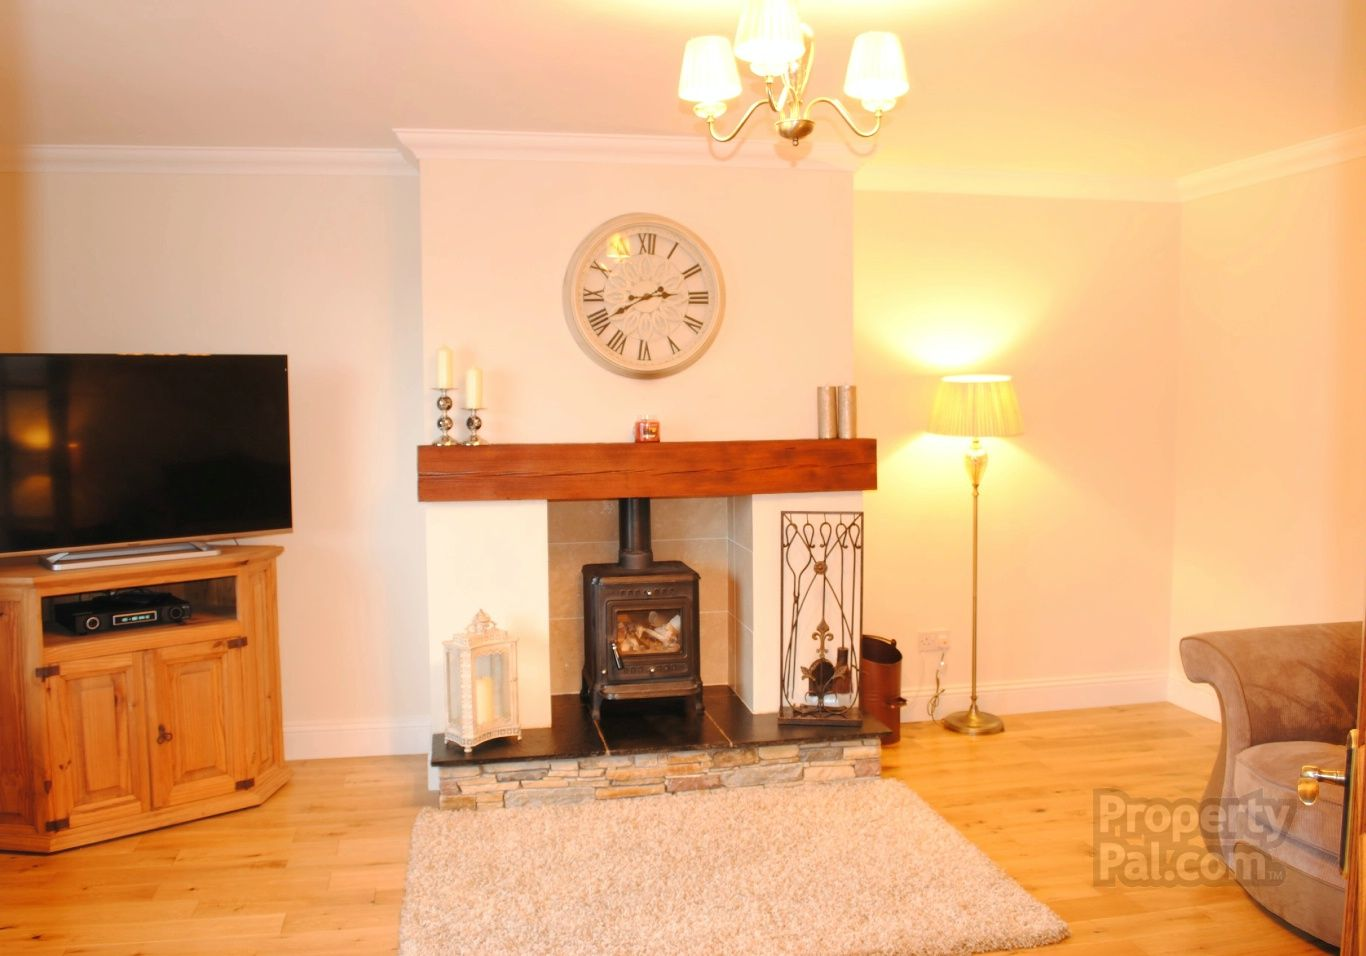 Stone Round Her Fireplace Property For Sale House Property